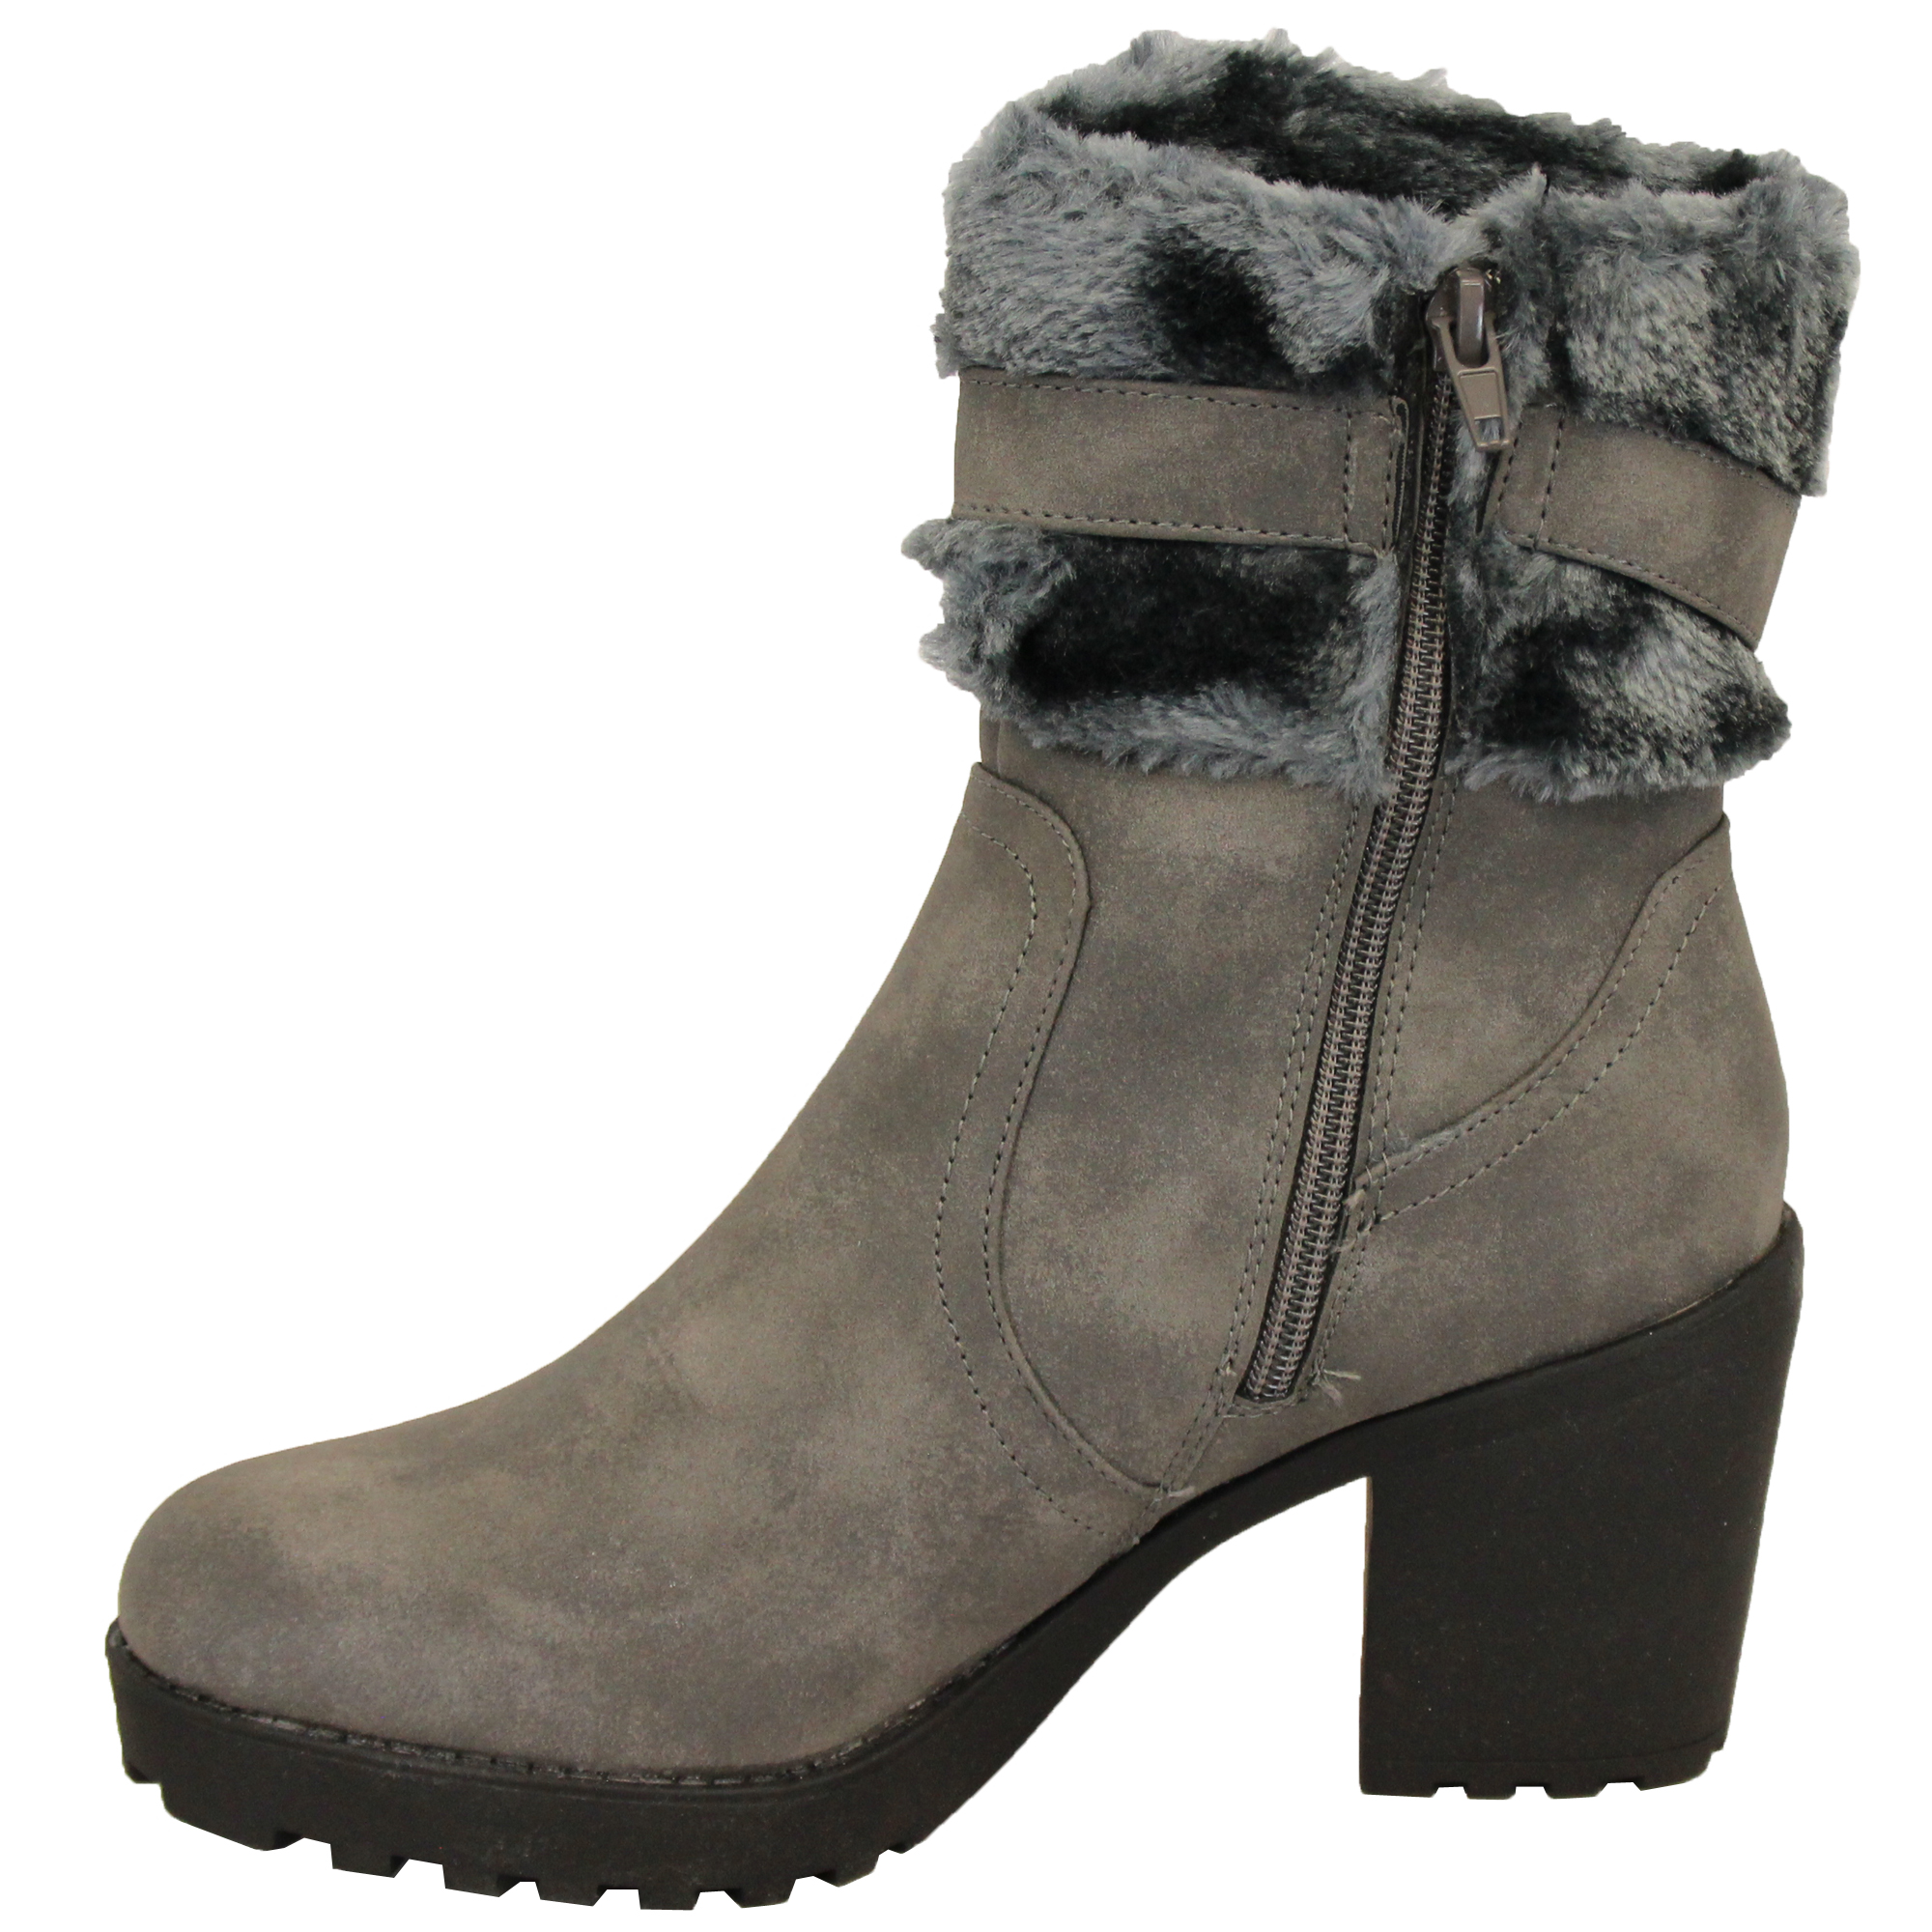 Ladies-Block-Heel-Chelsea-Ankle-Boots-Womens-Fur-Buckle-Warm-Casual-Winter-New thumbnail 6